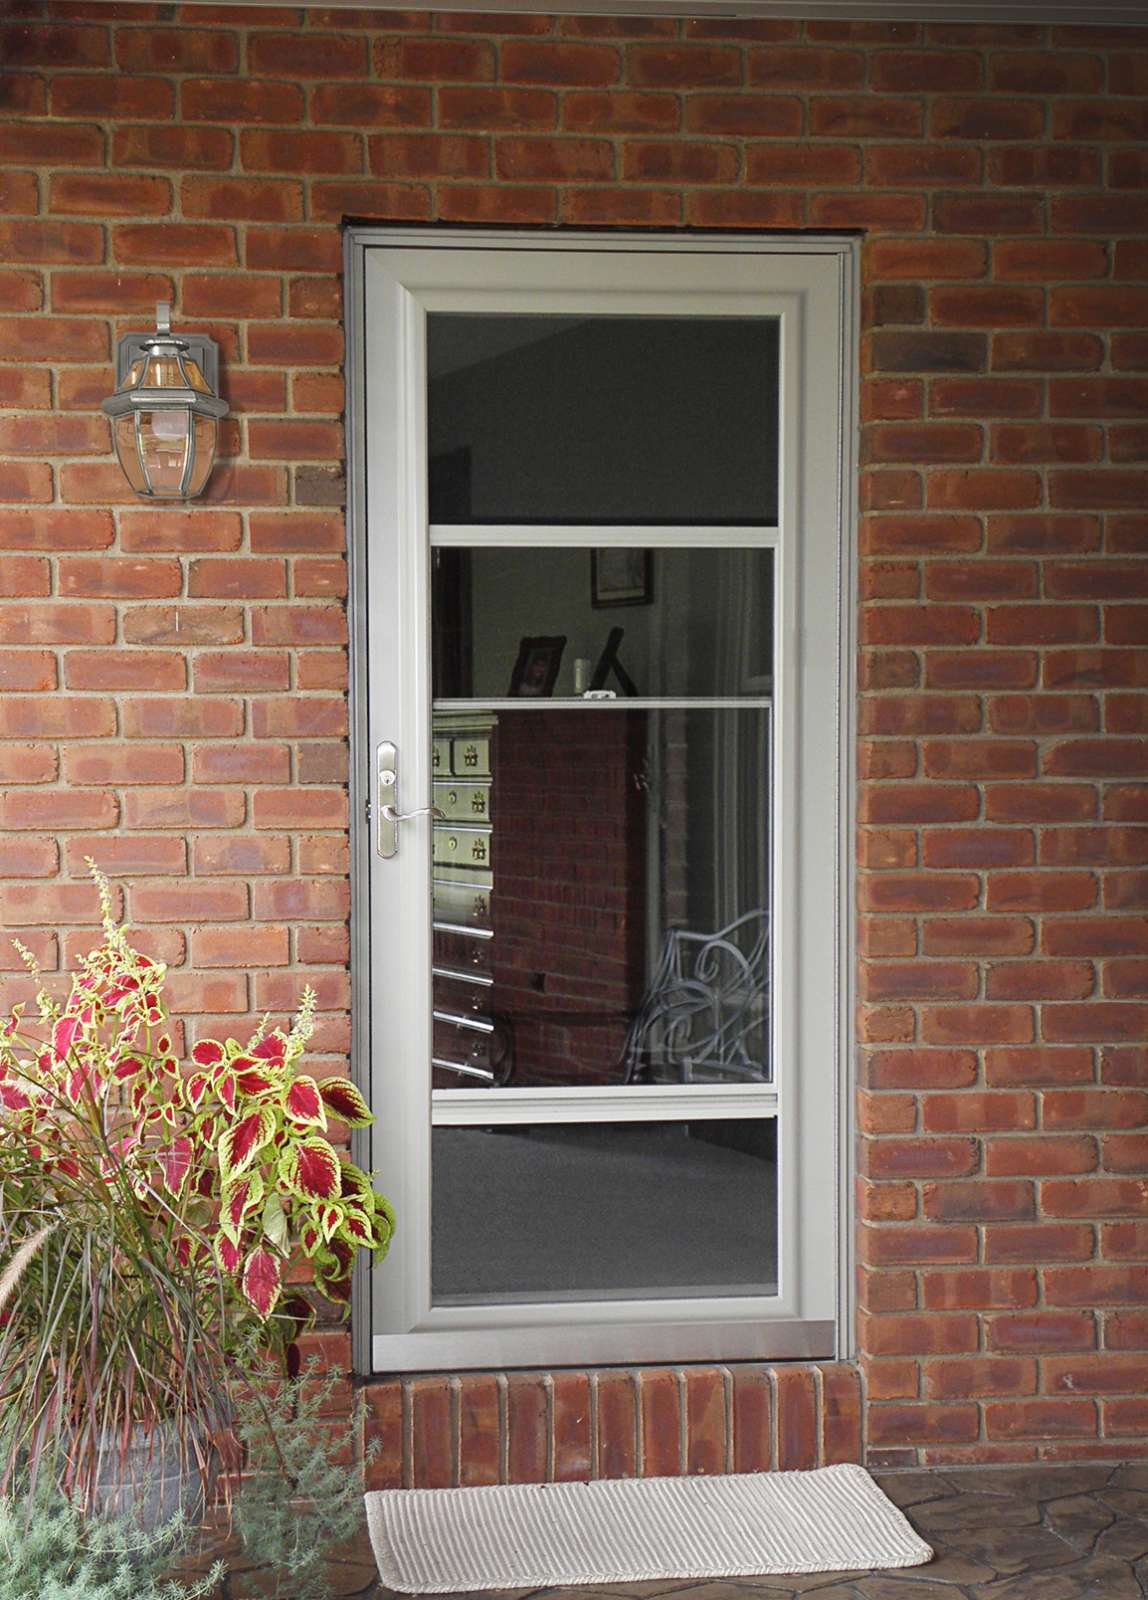 Storm Door pro via storm doors photos : ProVia Spectrum™ Storm Doors | Doors | Storm Doors | Products ...